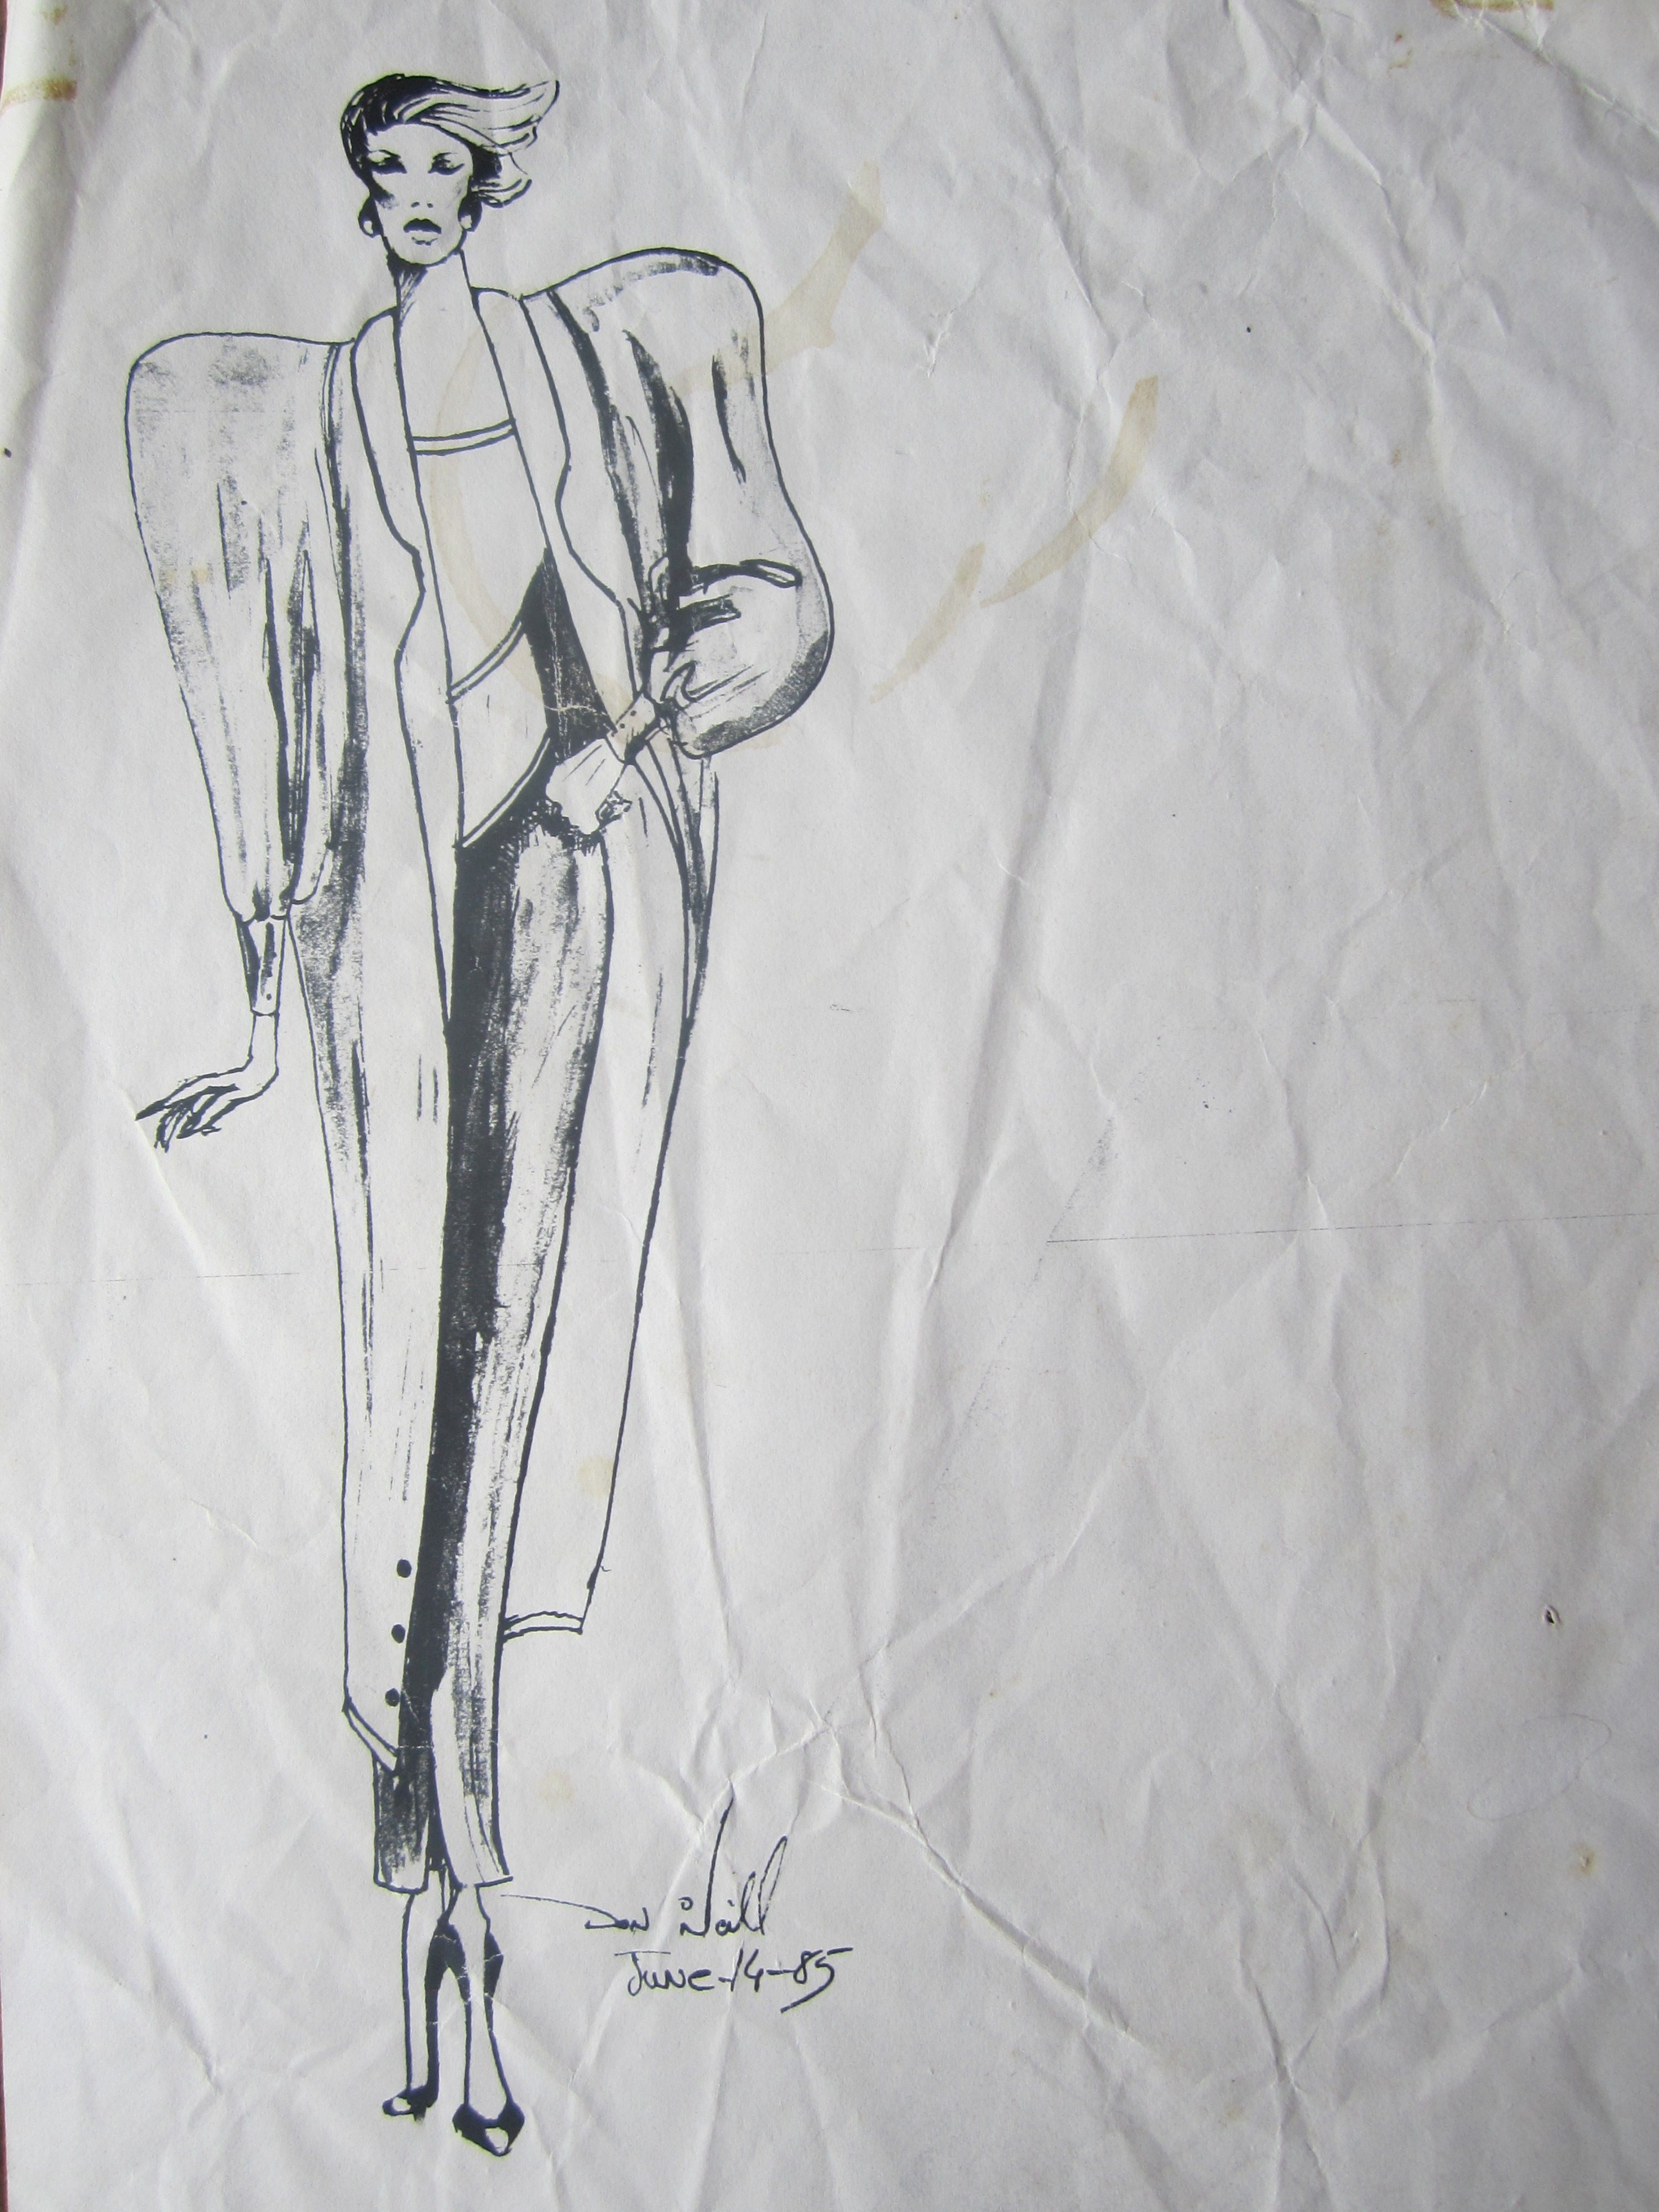 Don O'Neill's first fashion sketch, June 14, 1985